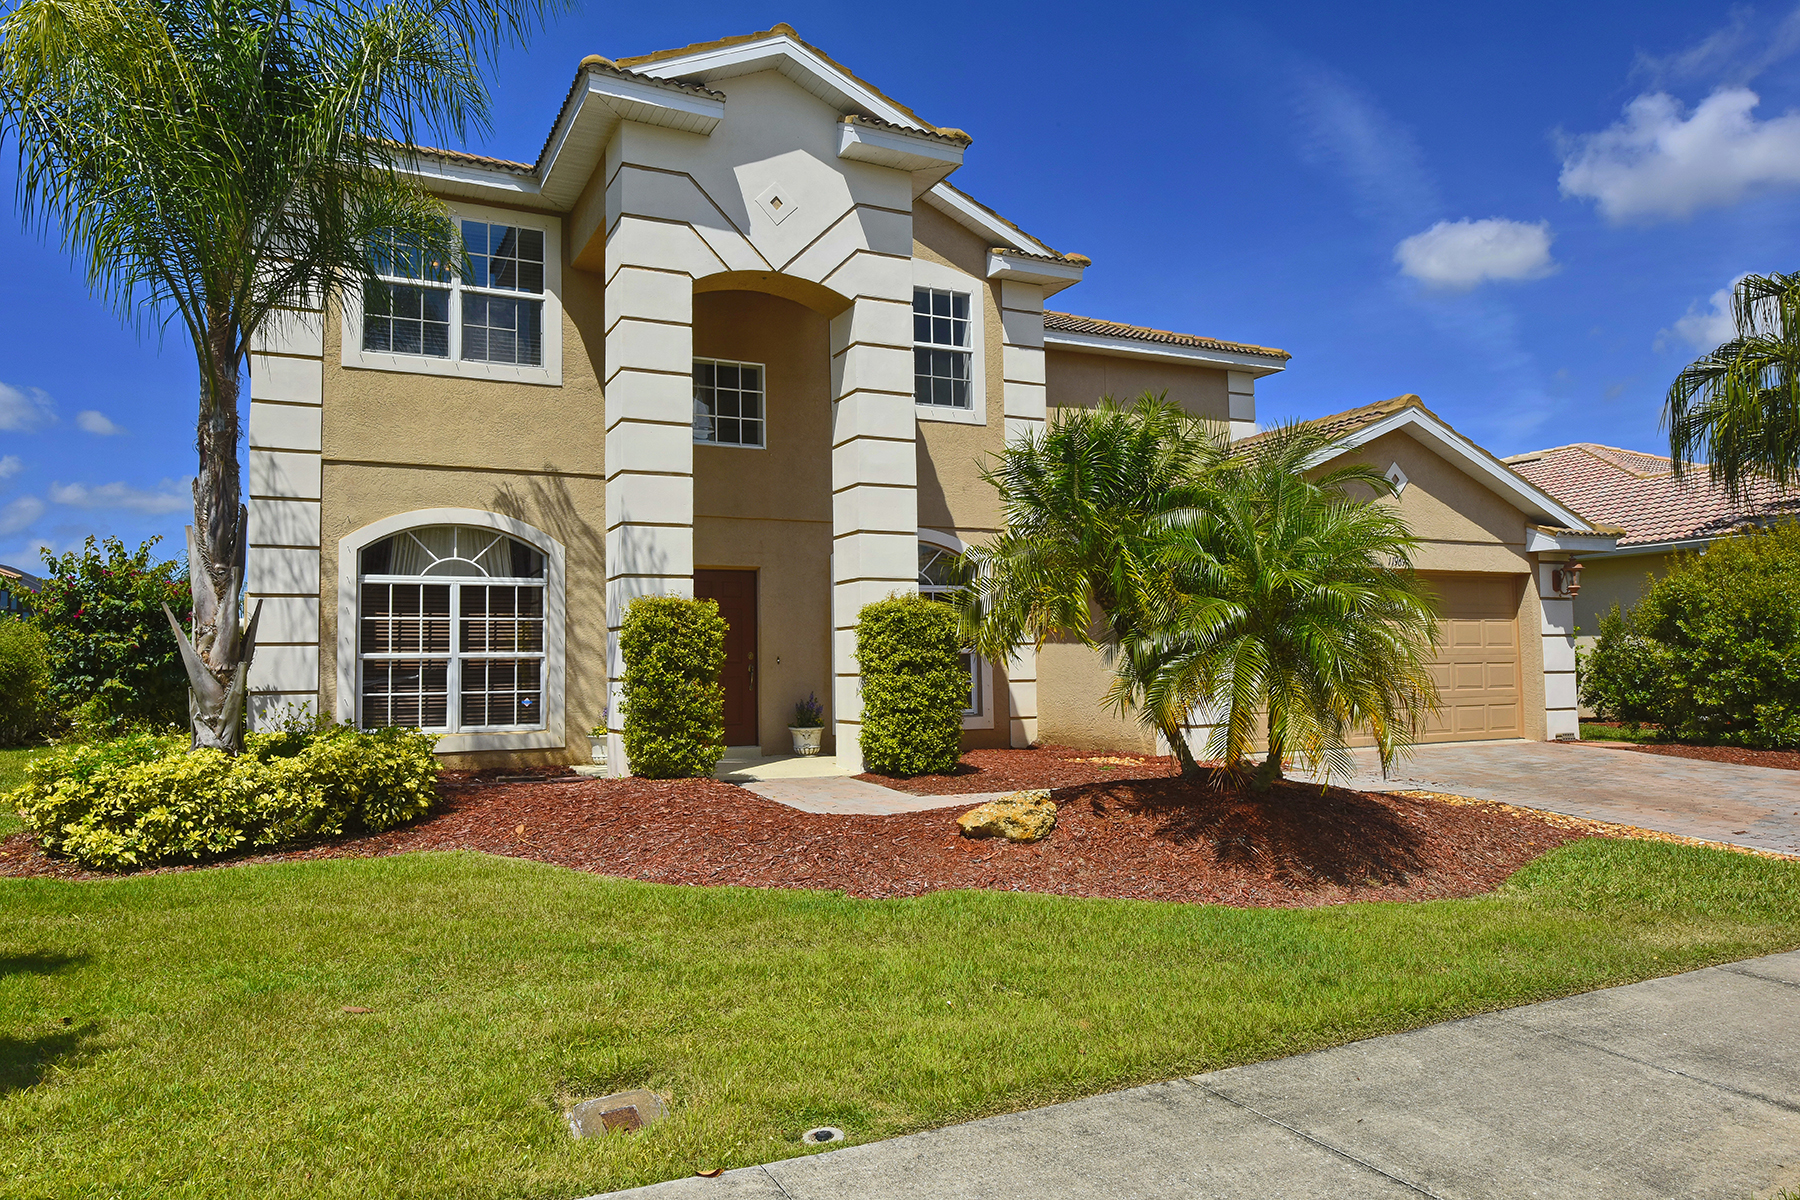 Single Family Home for Sale at STONEYBROOK AT VENICE 11969 Granite Woods Loop Venice, Florida 34292 United States